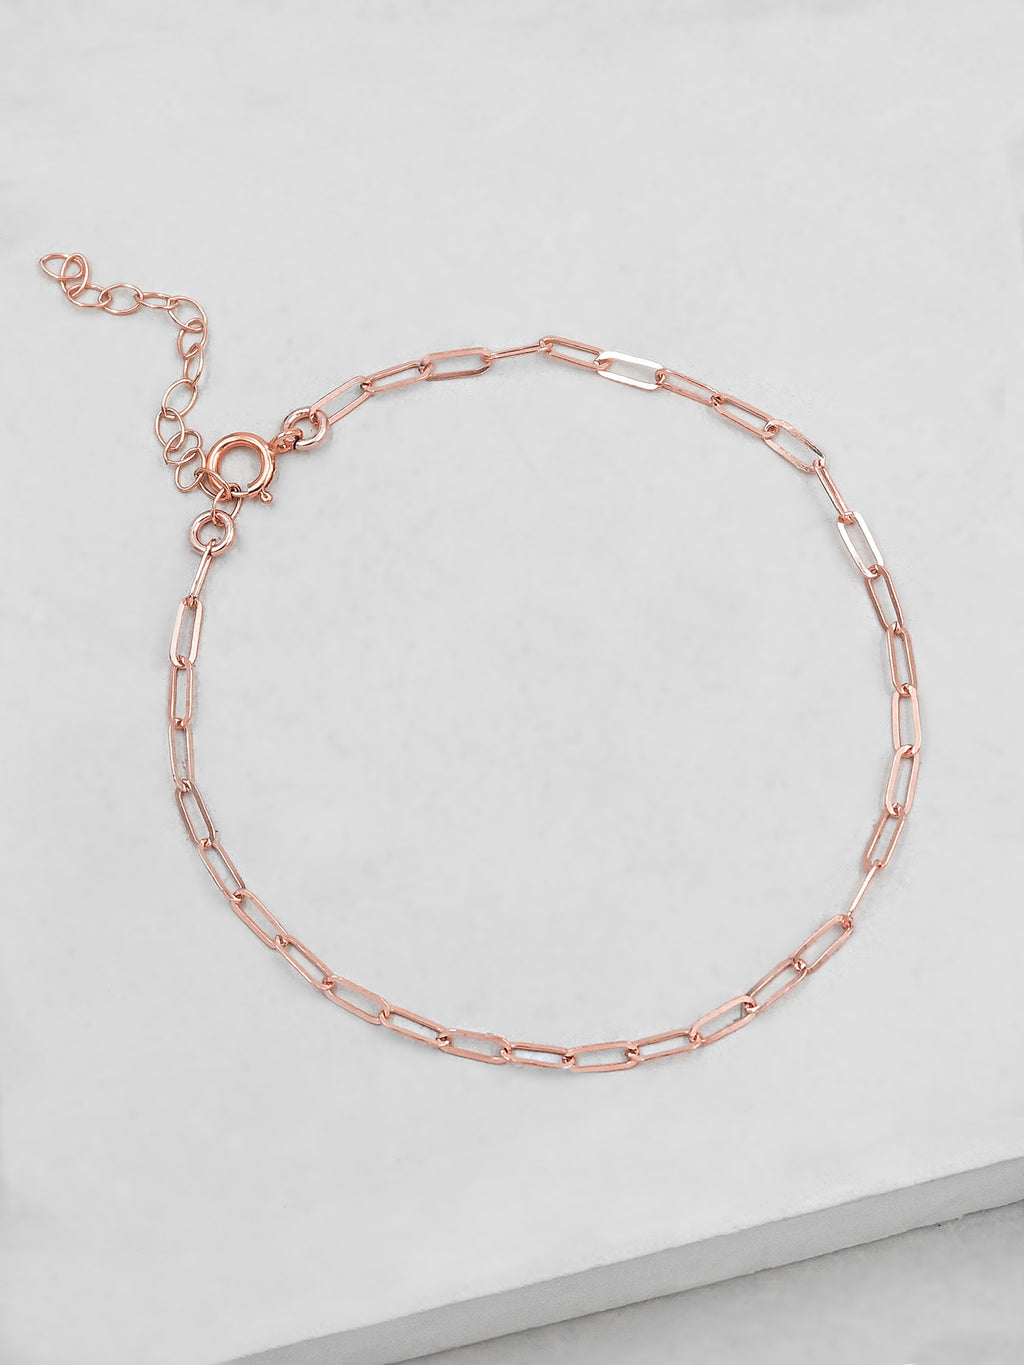 Mini Paperclip Bracelet - Rose Gold Filled